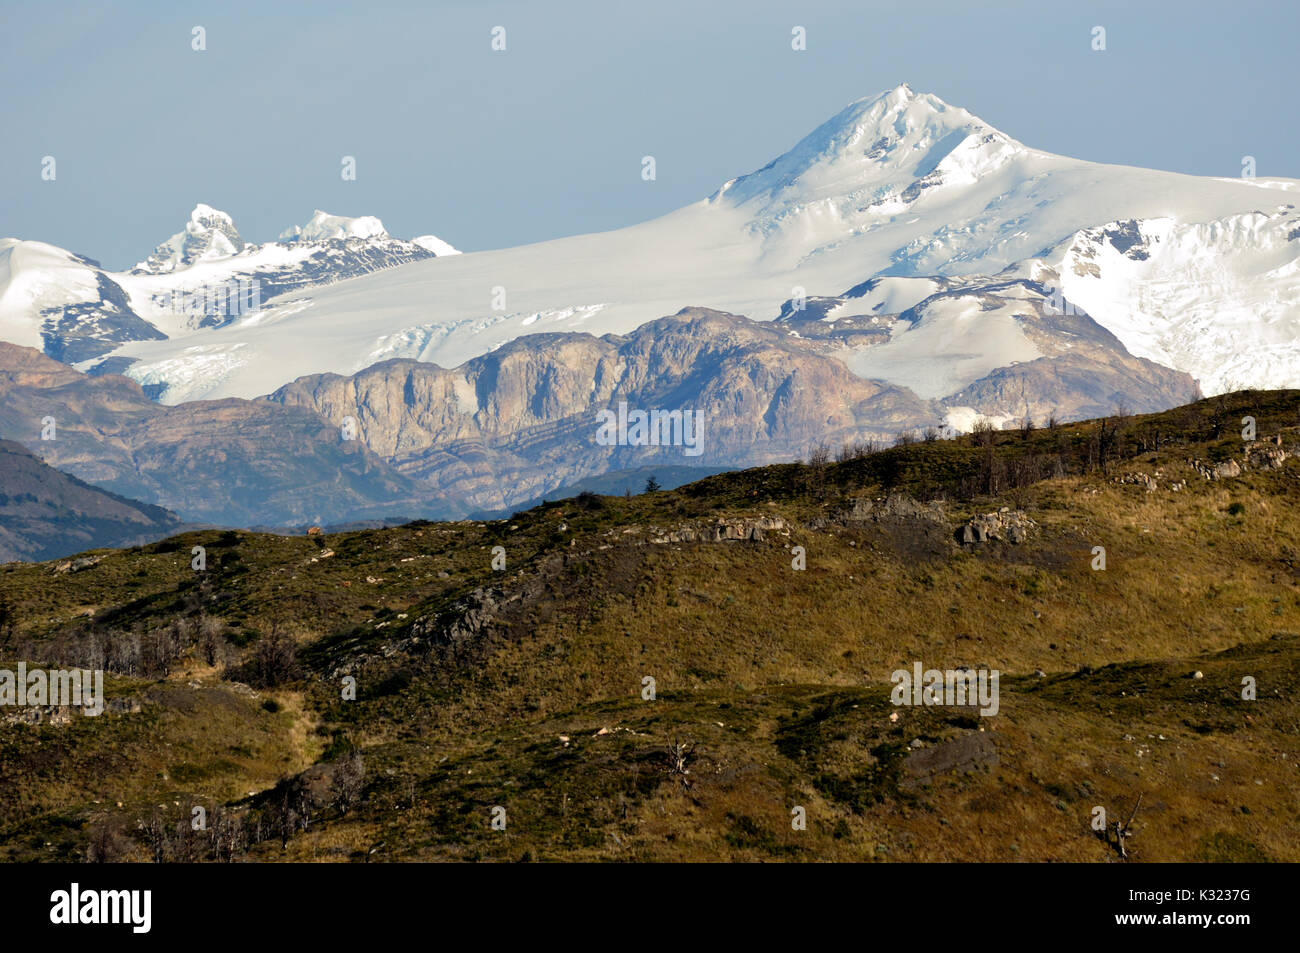 Lonely and seldom visible peaks rise over the Southern Patagonian Ice Field (Campo de hielo patagonico sur) . Seen from Lago Pehoe at Torres del Paine - Stock Image